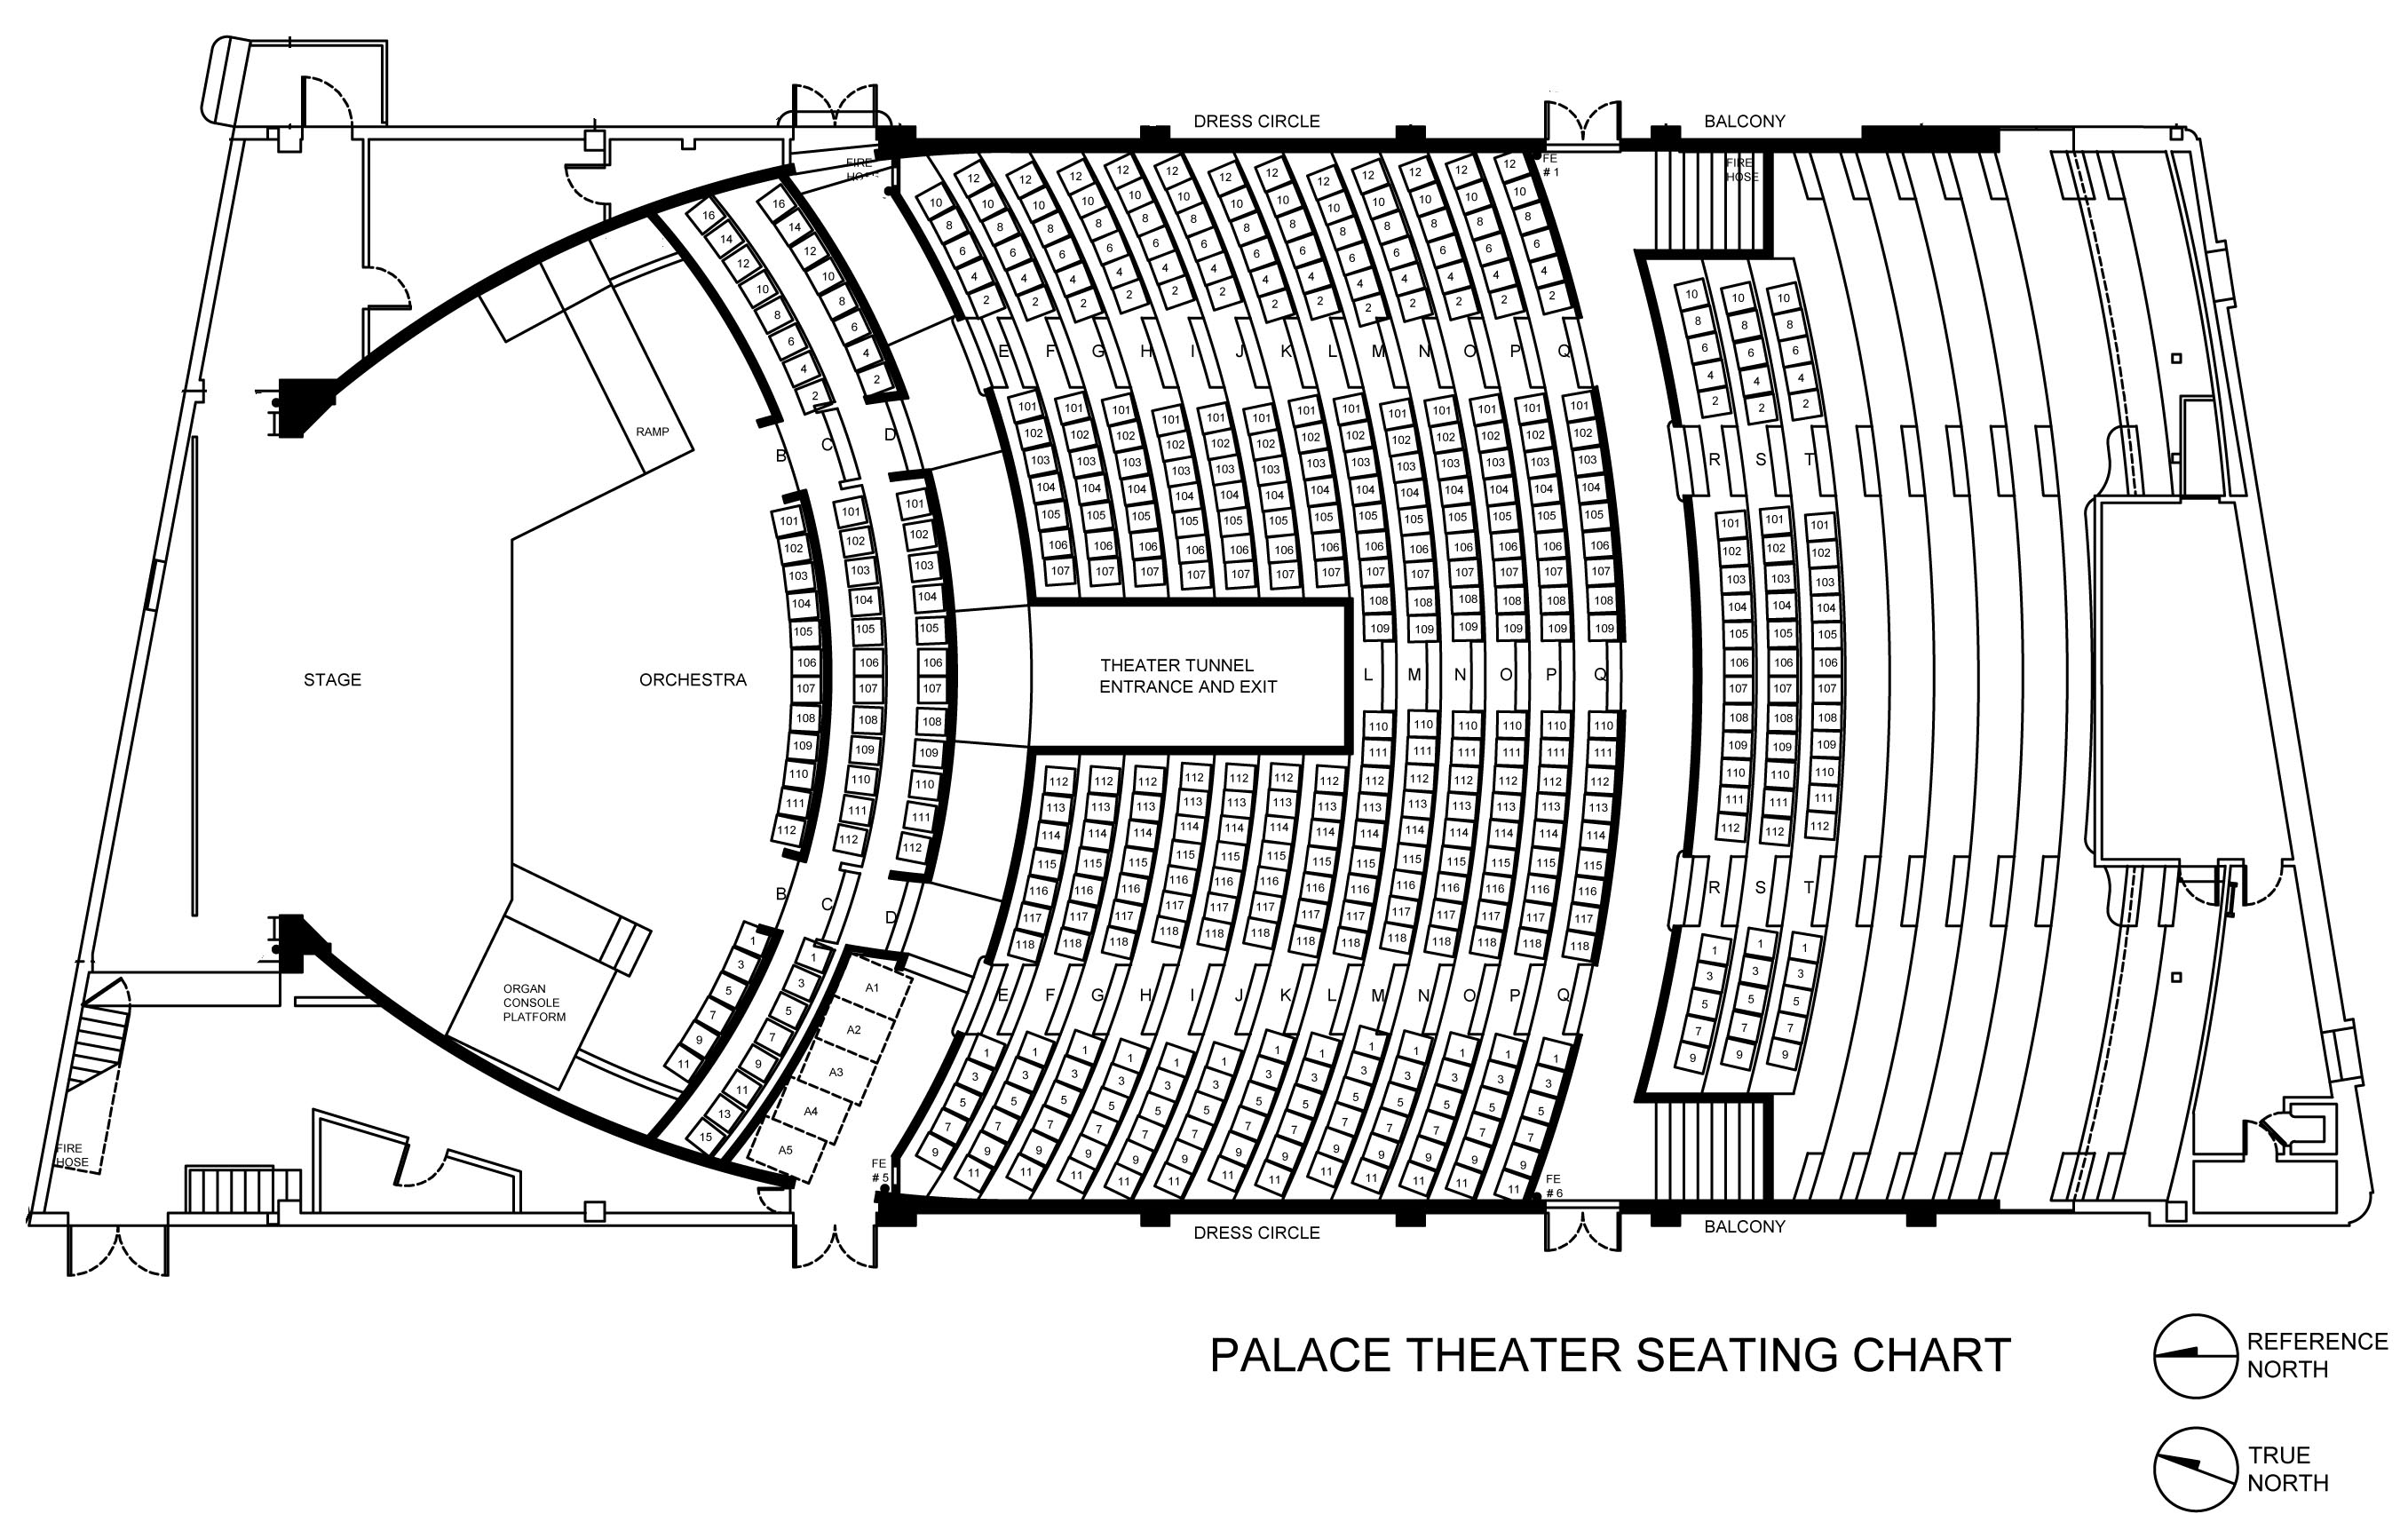 Seating Chart The Palace Theater Hilo Hawaii